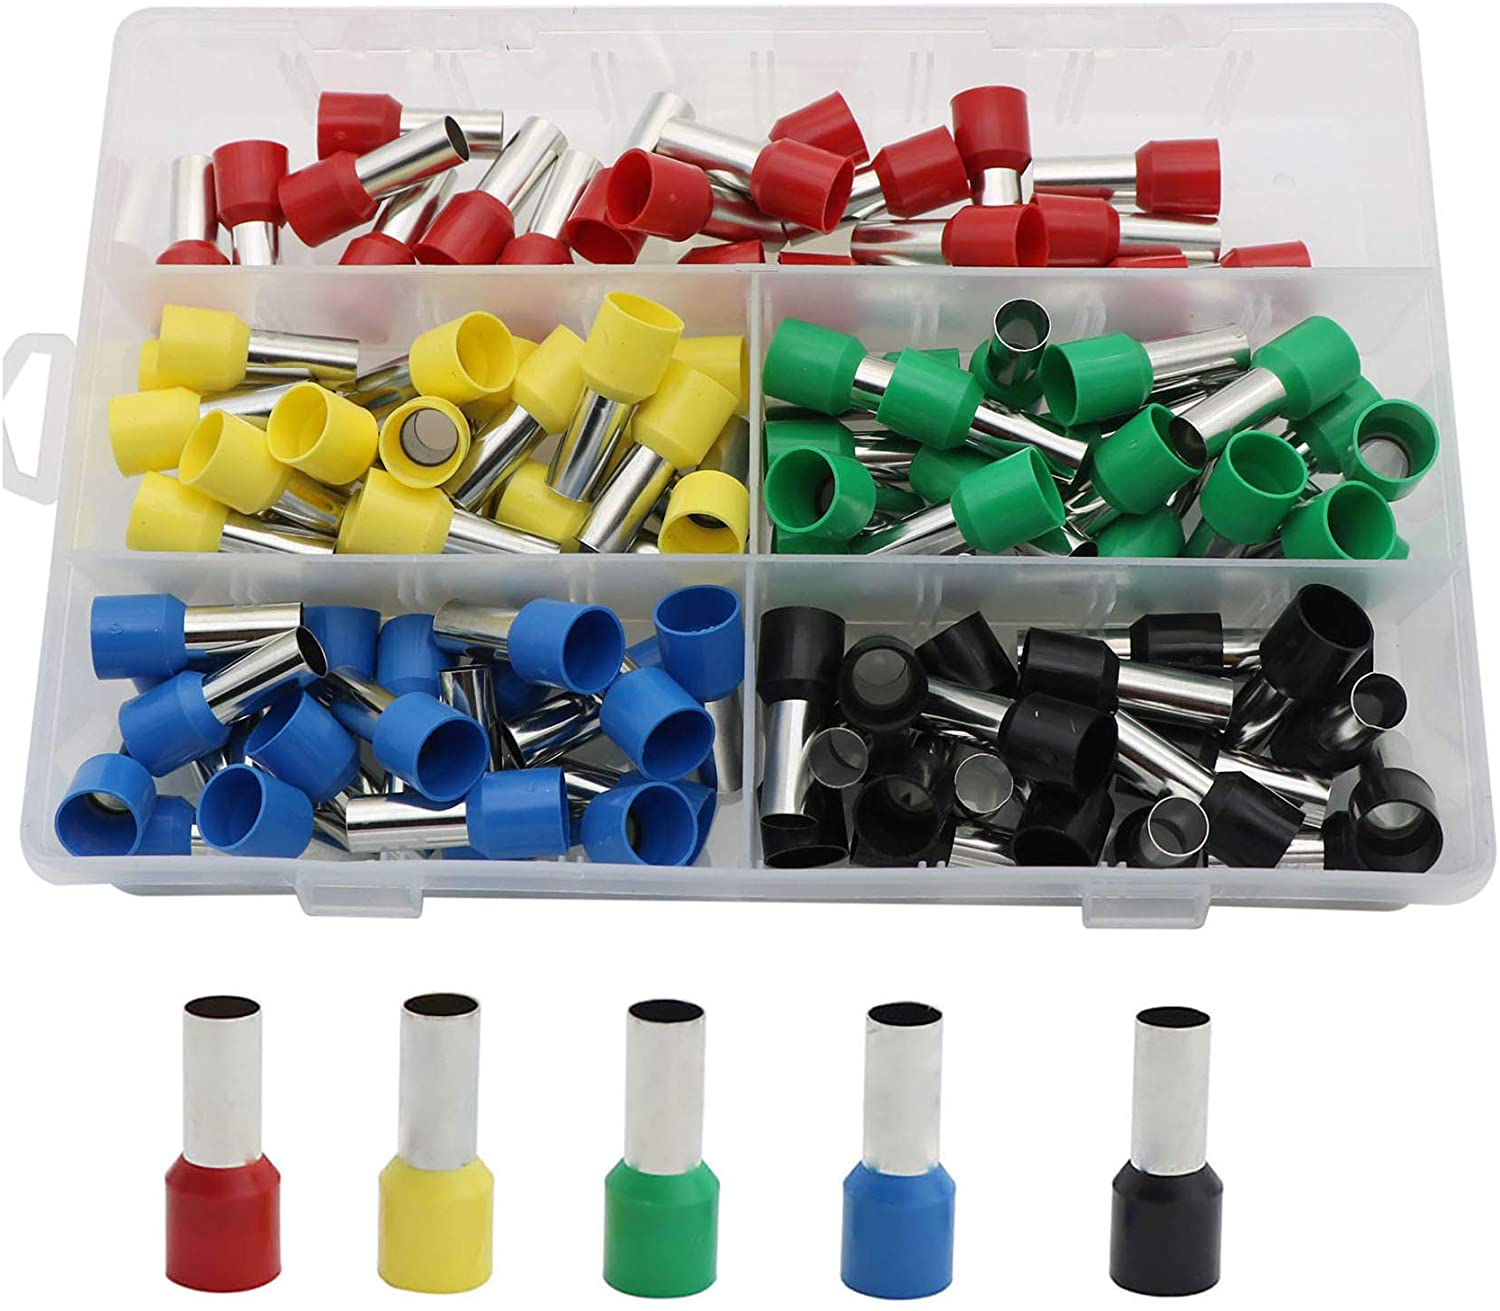 Wire Crimp Connectors Cord End Terminal Insulated Ferrule 4 AWG with 100 Pcs